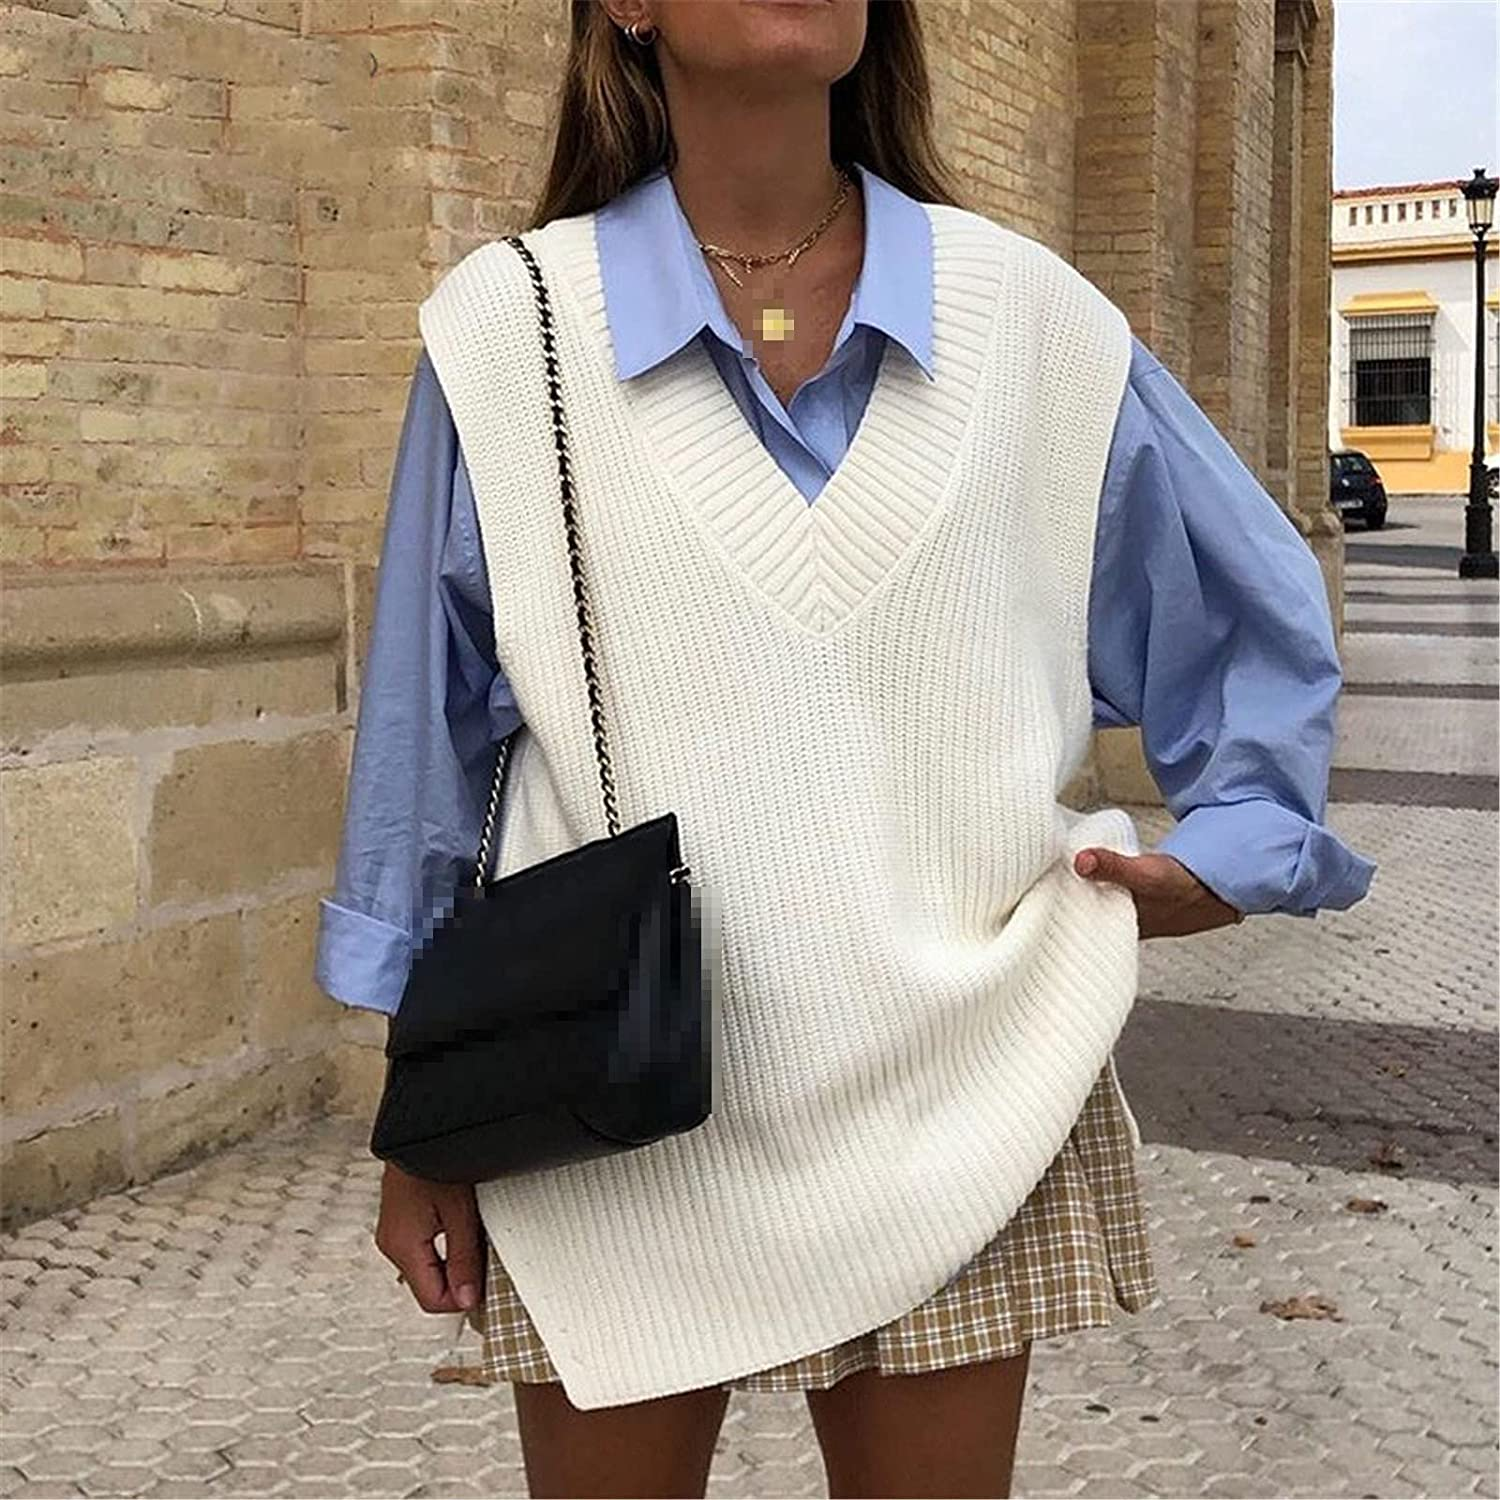 V Neck Sleeve White Knitted Autumn Winter Women Sweater Vests Casual Loose Outwear Solid Sweater Preppy Style Vests